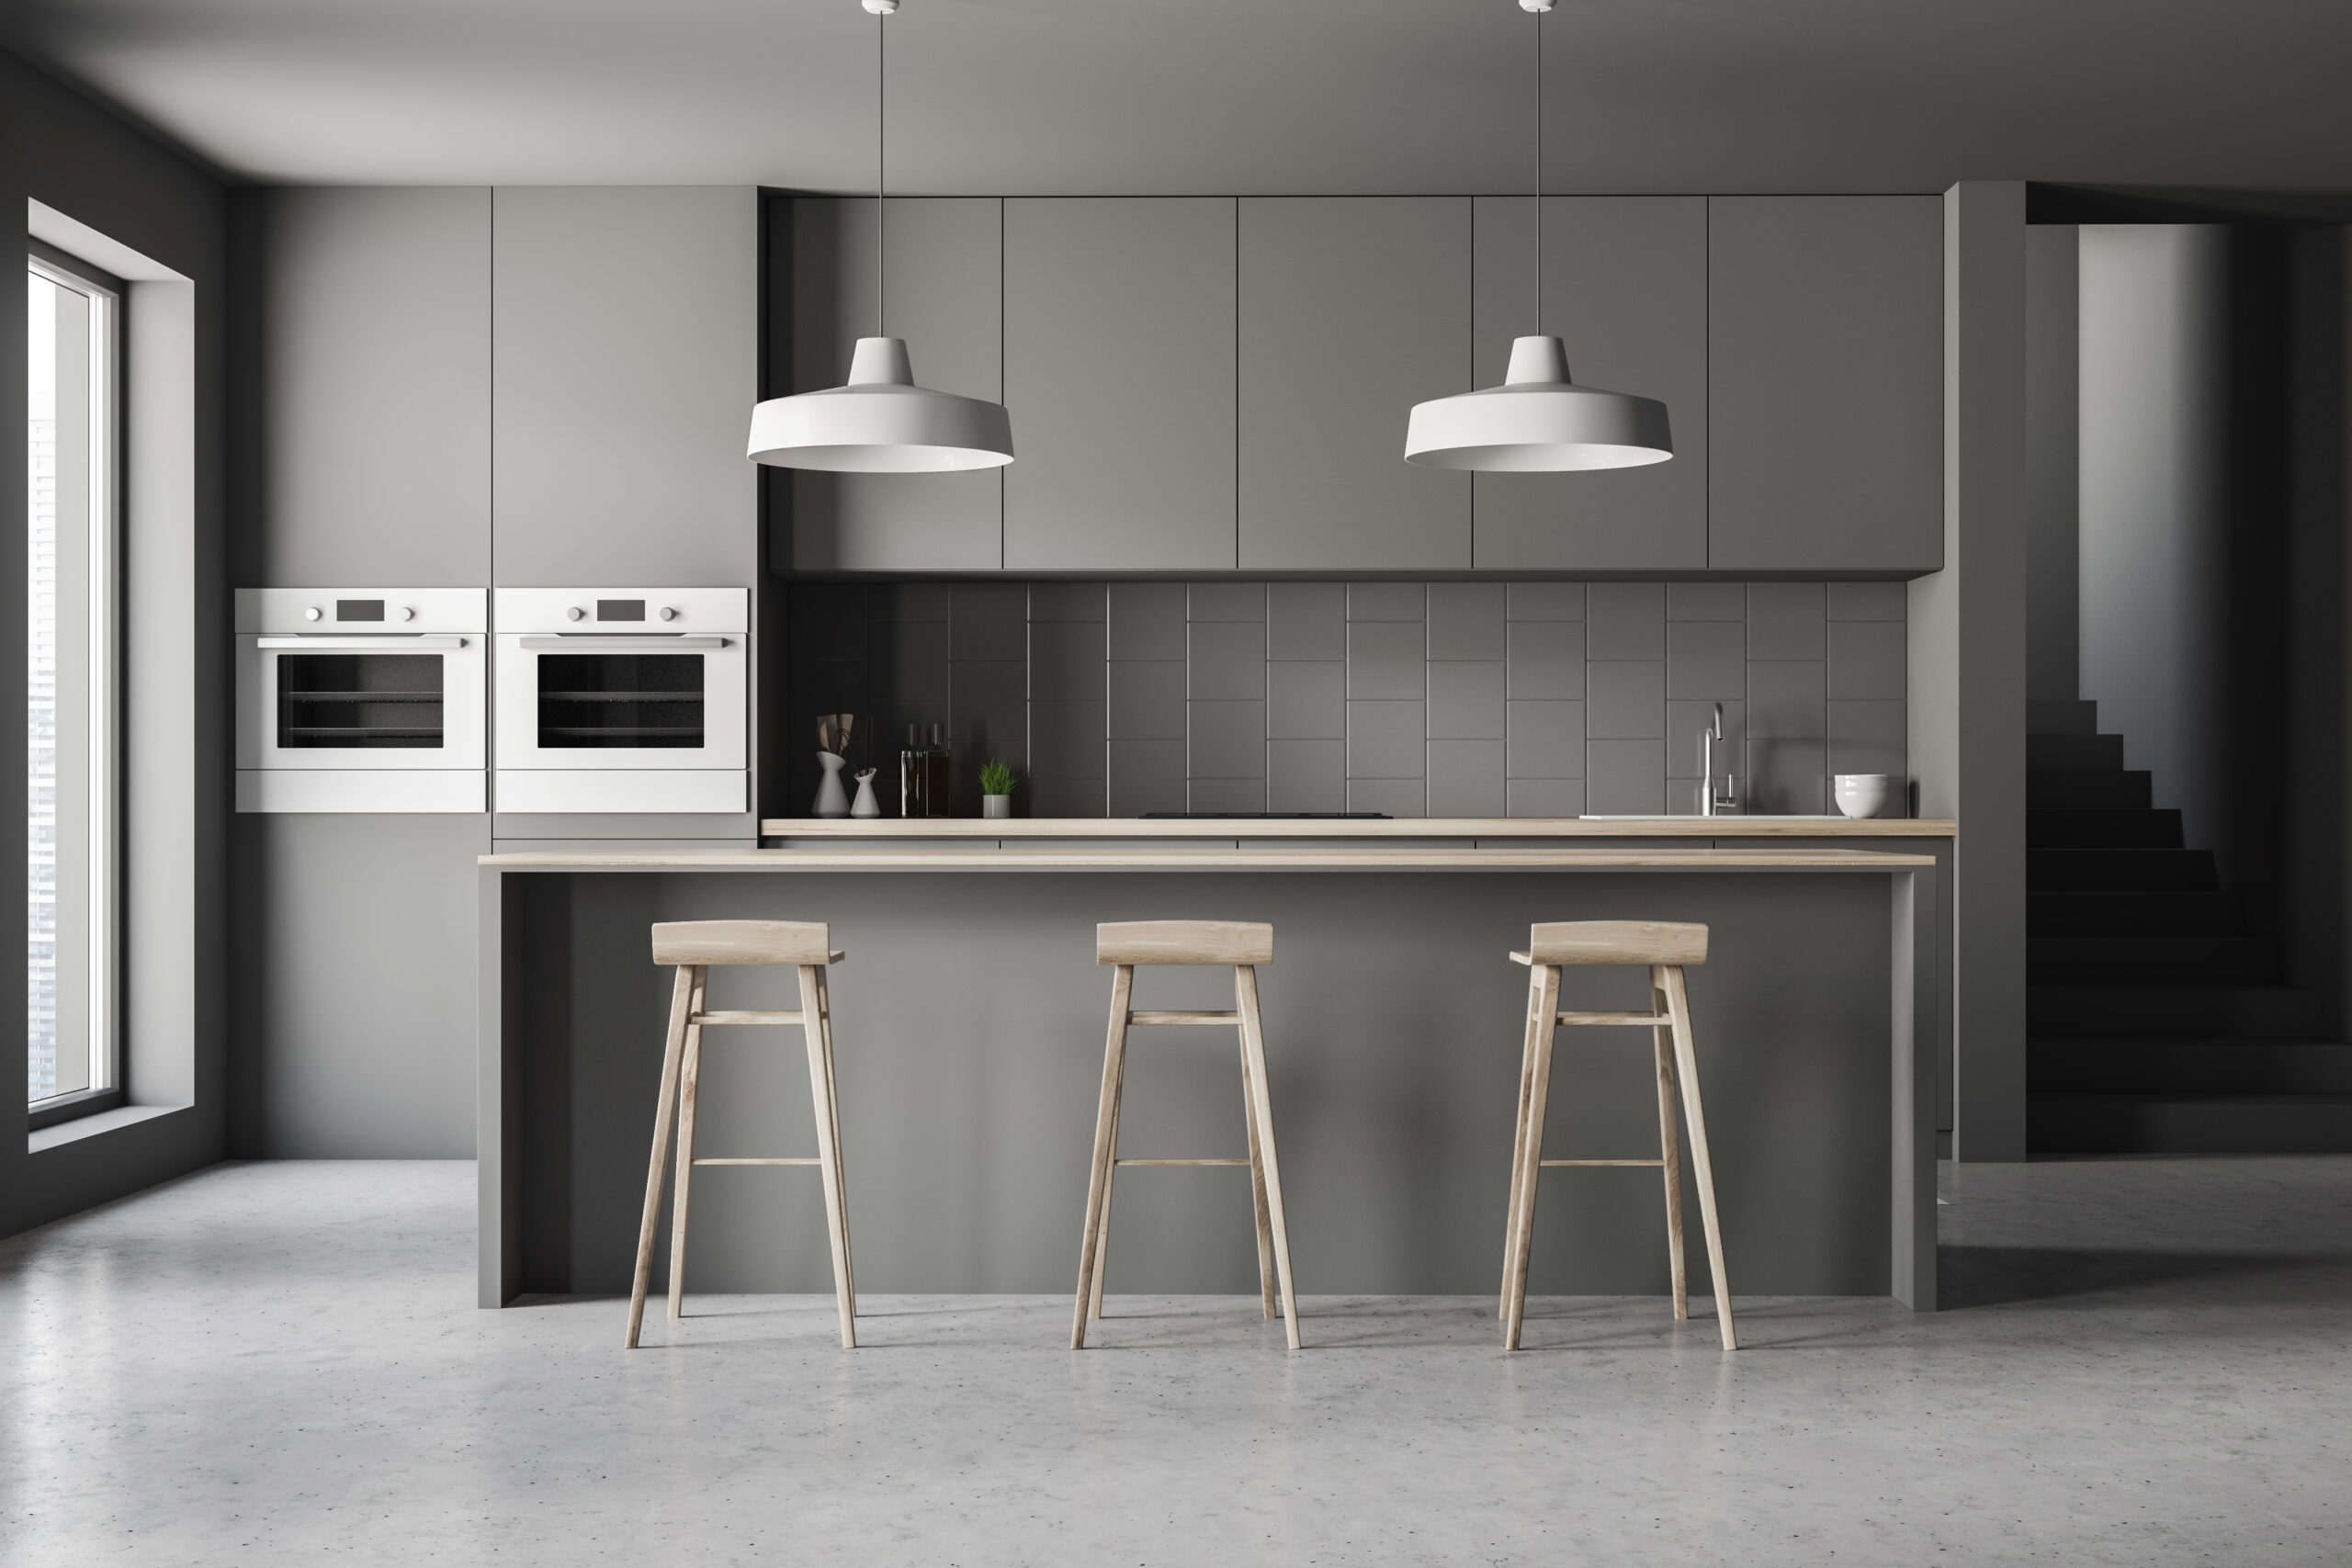 Interior of modern kitchen with gray walls, concrete floor, gray countertops and cupboards and gray and wooden bar with stools. 3d rendering